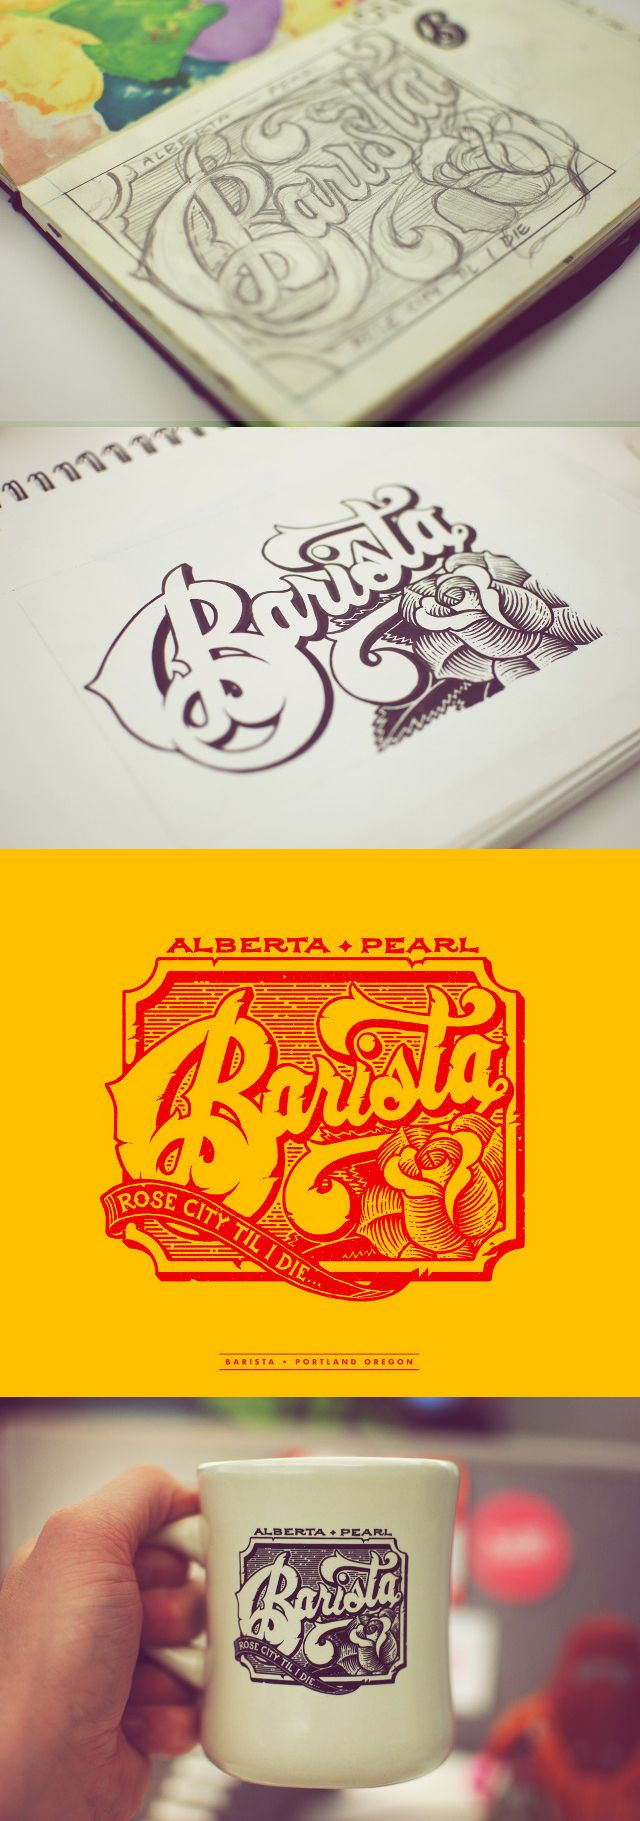 brett stenson. lettercult, best of 2011.